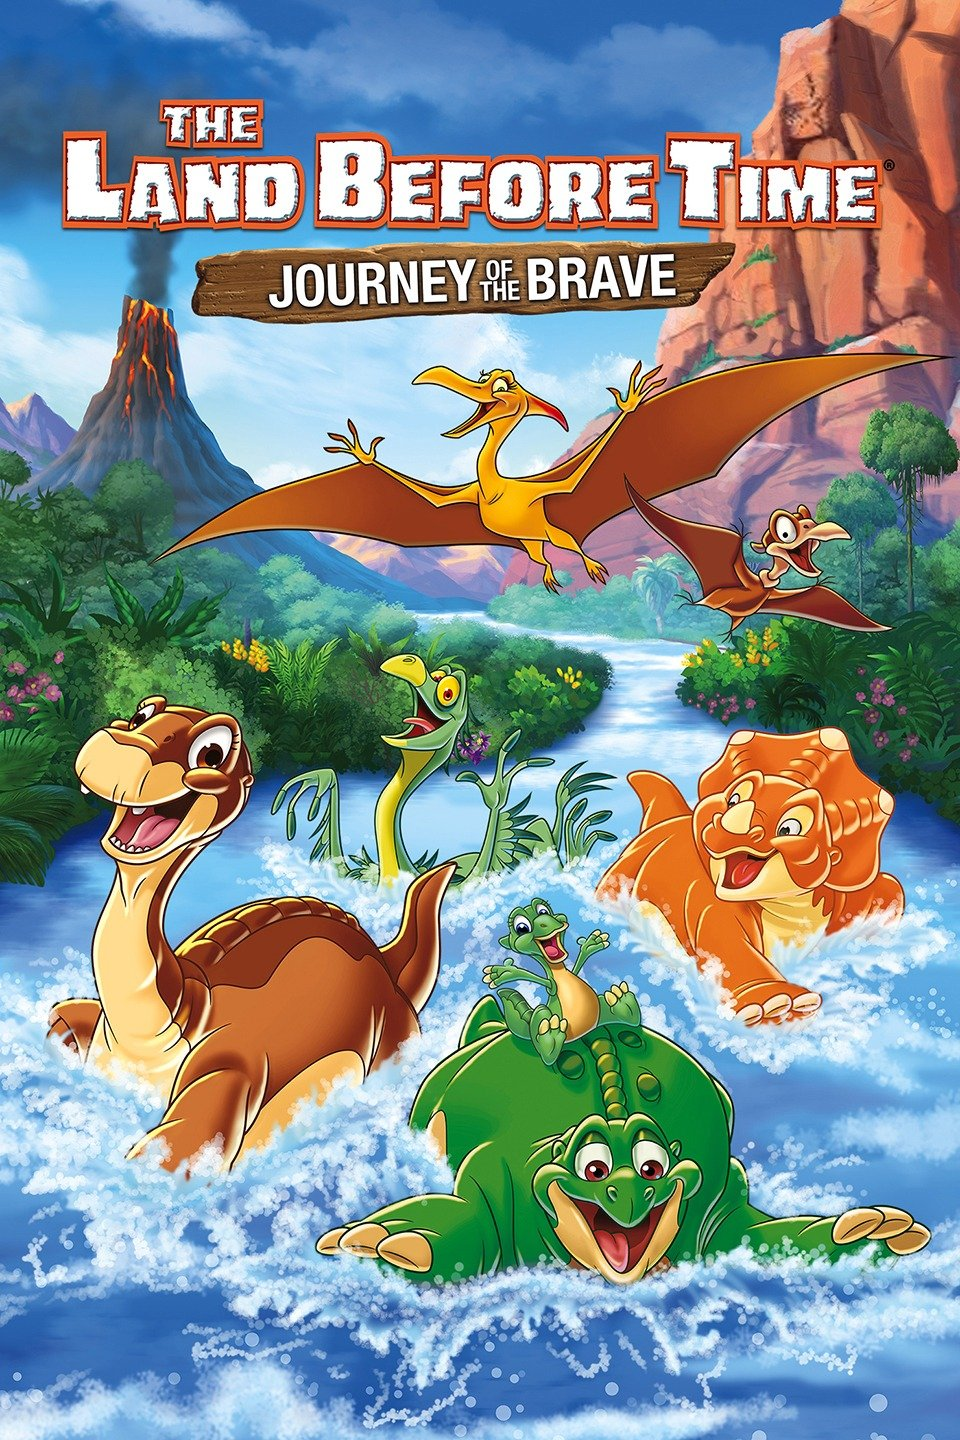 The Land Before Time XIV: Journey of the Brave-The Land Before Time XIV: Journey of the Heart